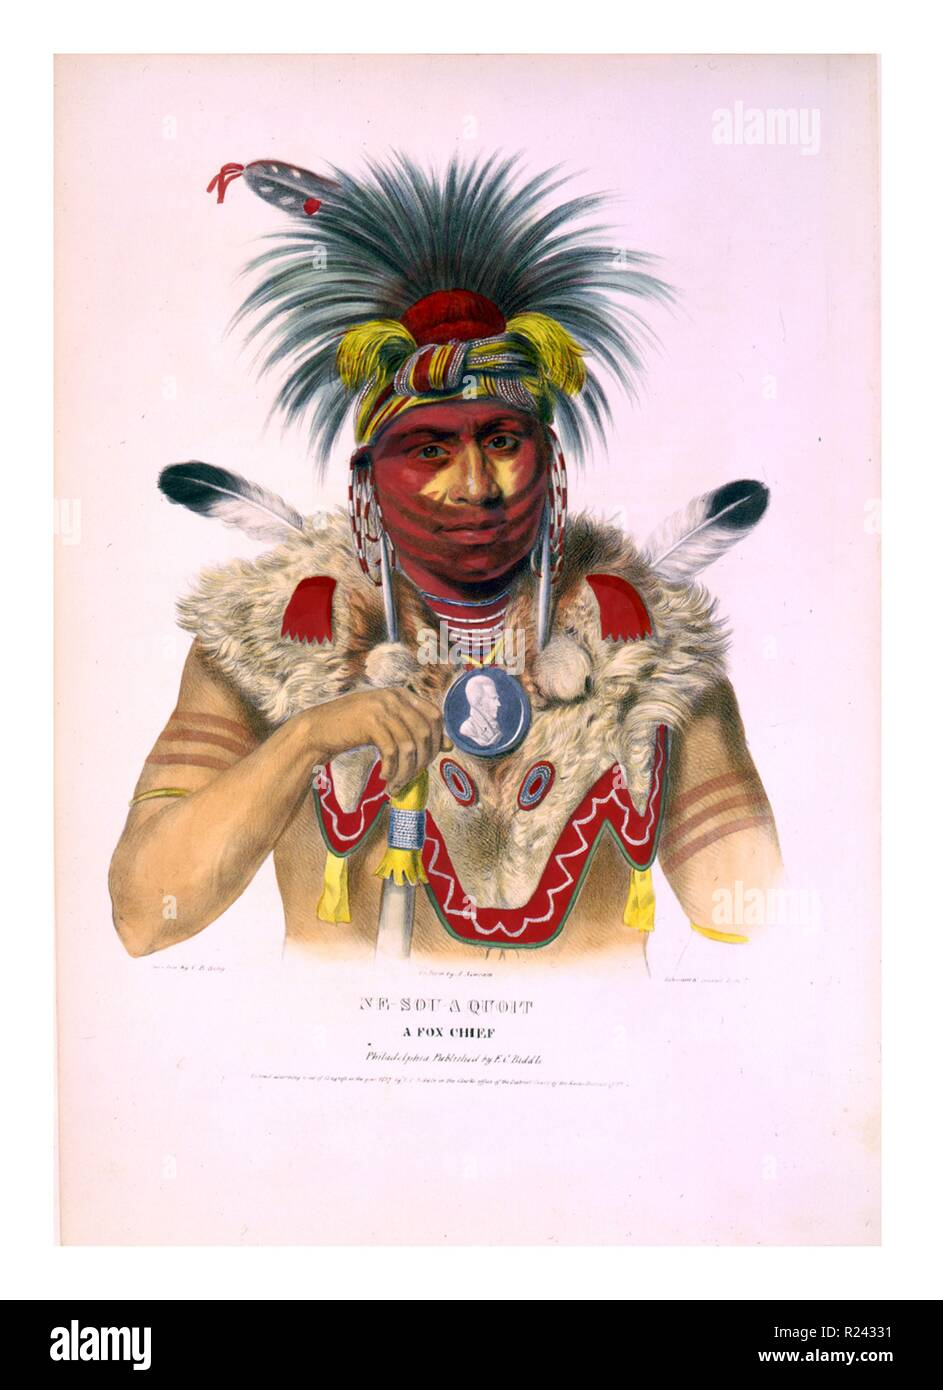 Ne-Sou-A Quoit, a Fox chief wearing elaborate headdress, earrings, necklace, and fur shoulder garment, as well as a portrait medallion around his neck. The Mesquakie (Meskwaki) are a Native American tribe often known to outsiders as the Fox tribe. They are often closely linked to the Sauk people. c.1838 - Stock Image